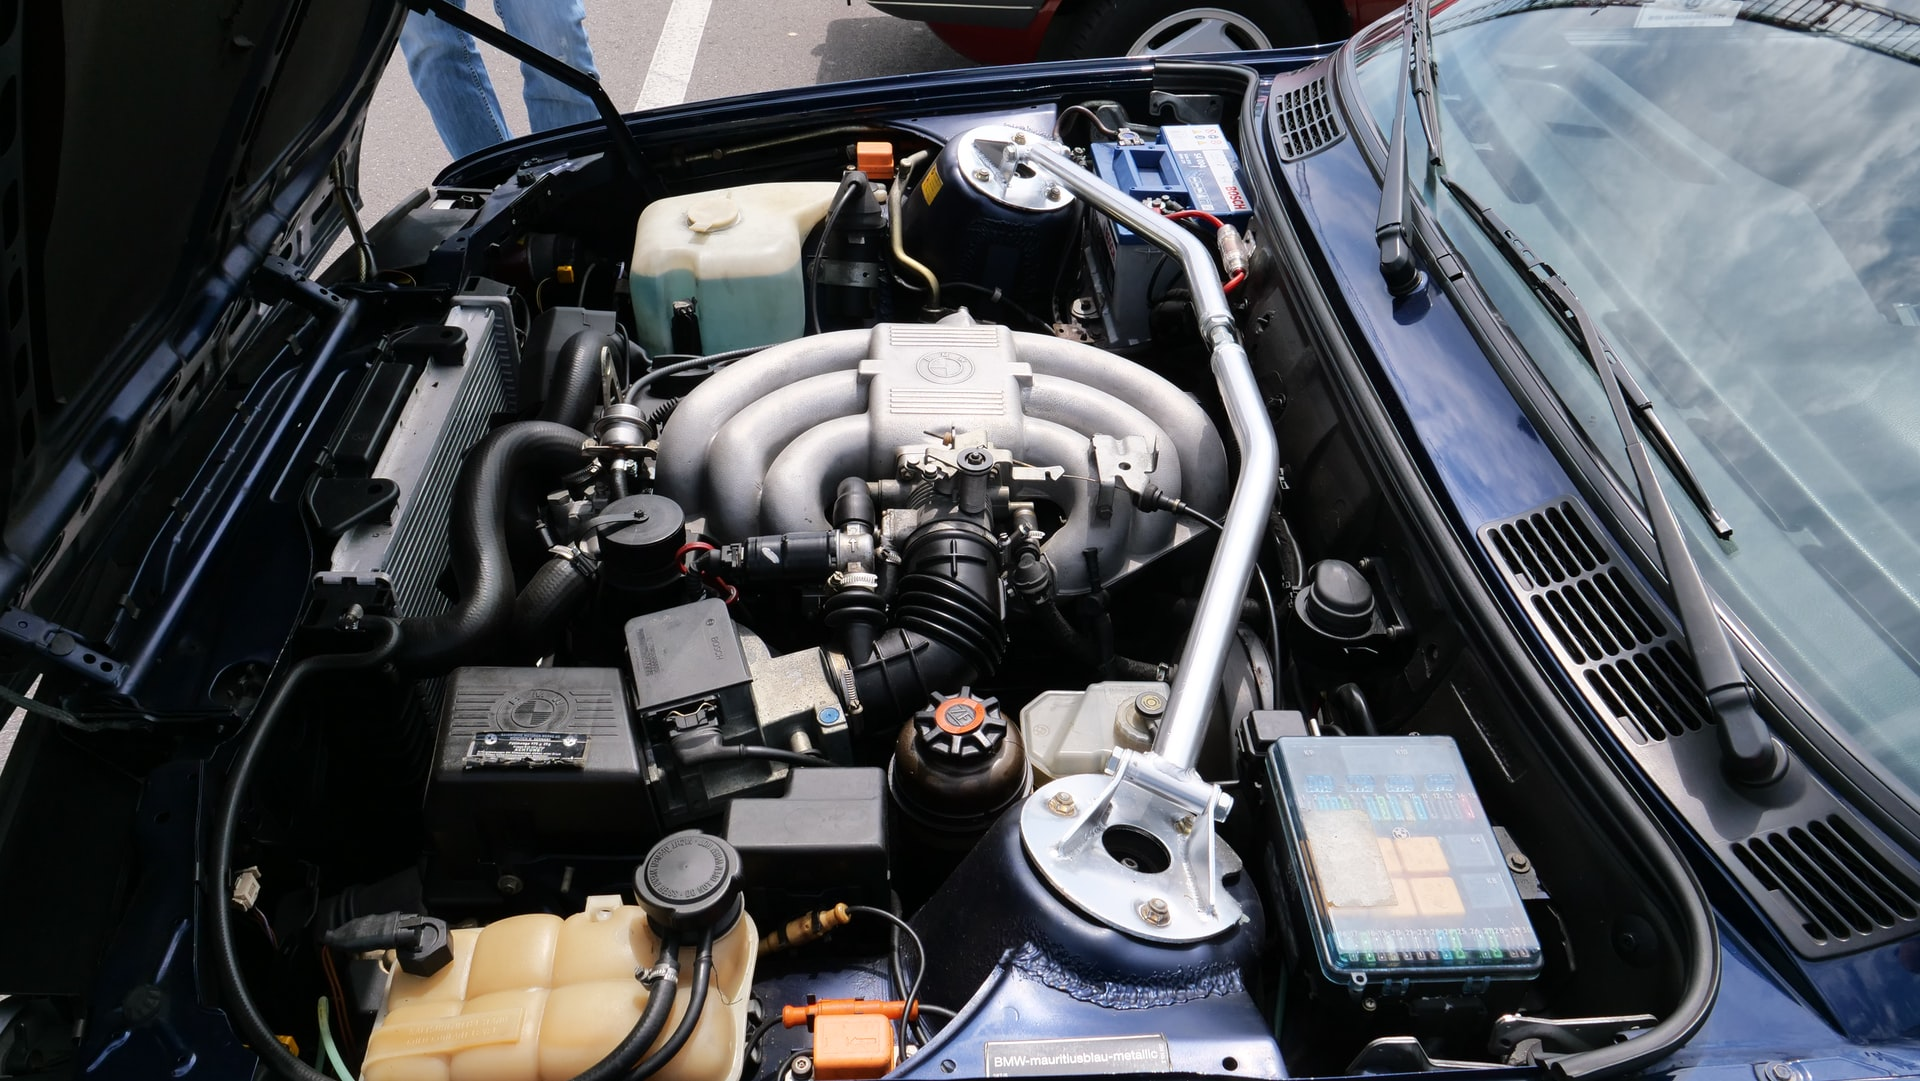 Proper Car Engine Care: Oil Change and Engine Cleanup